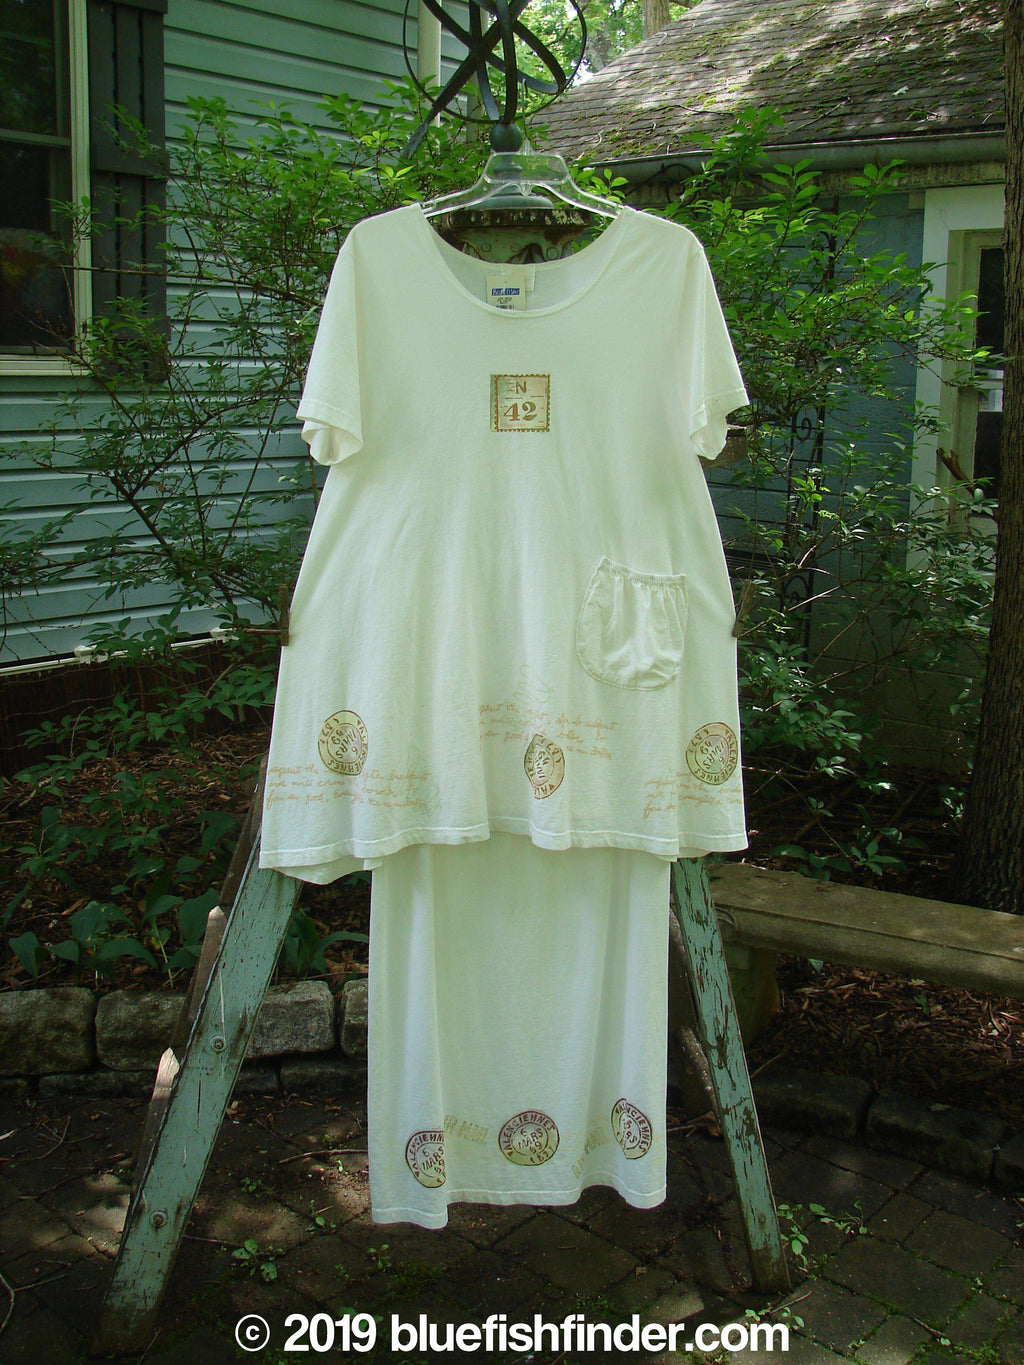 Vintage Blue Fish Clothing 2000 NWT June Dress Straight Skirt Duo Stamp White Size 2- Bluefishfinder.com